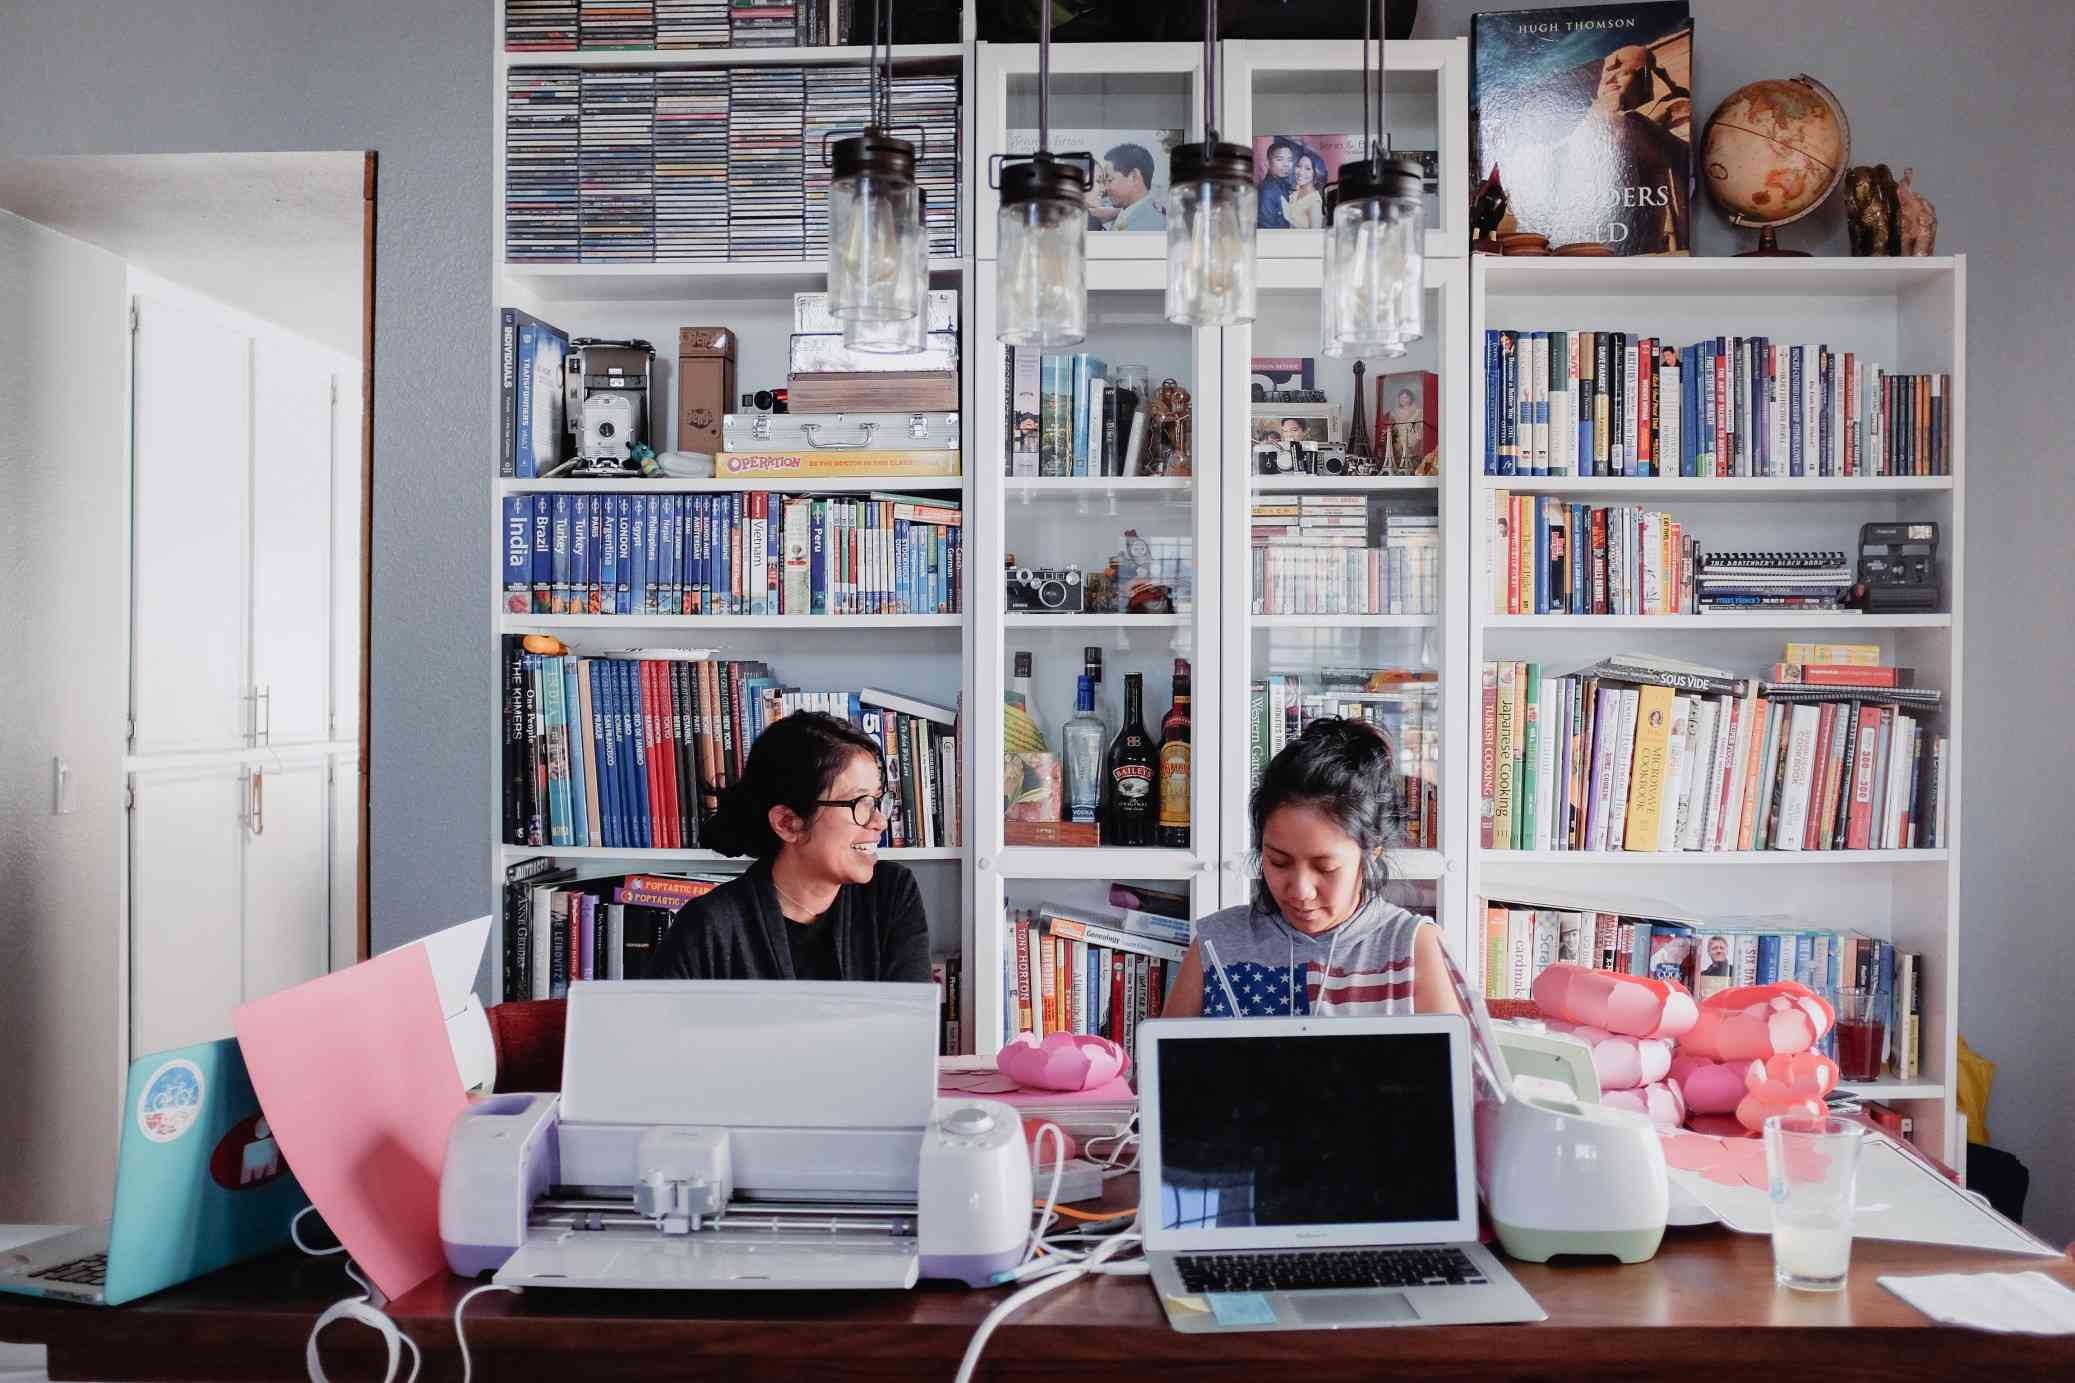 Two women working in a home office.